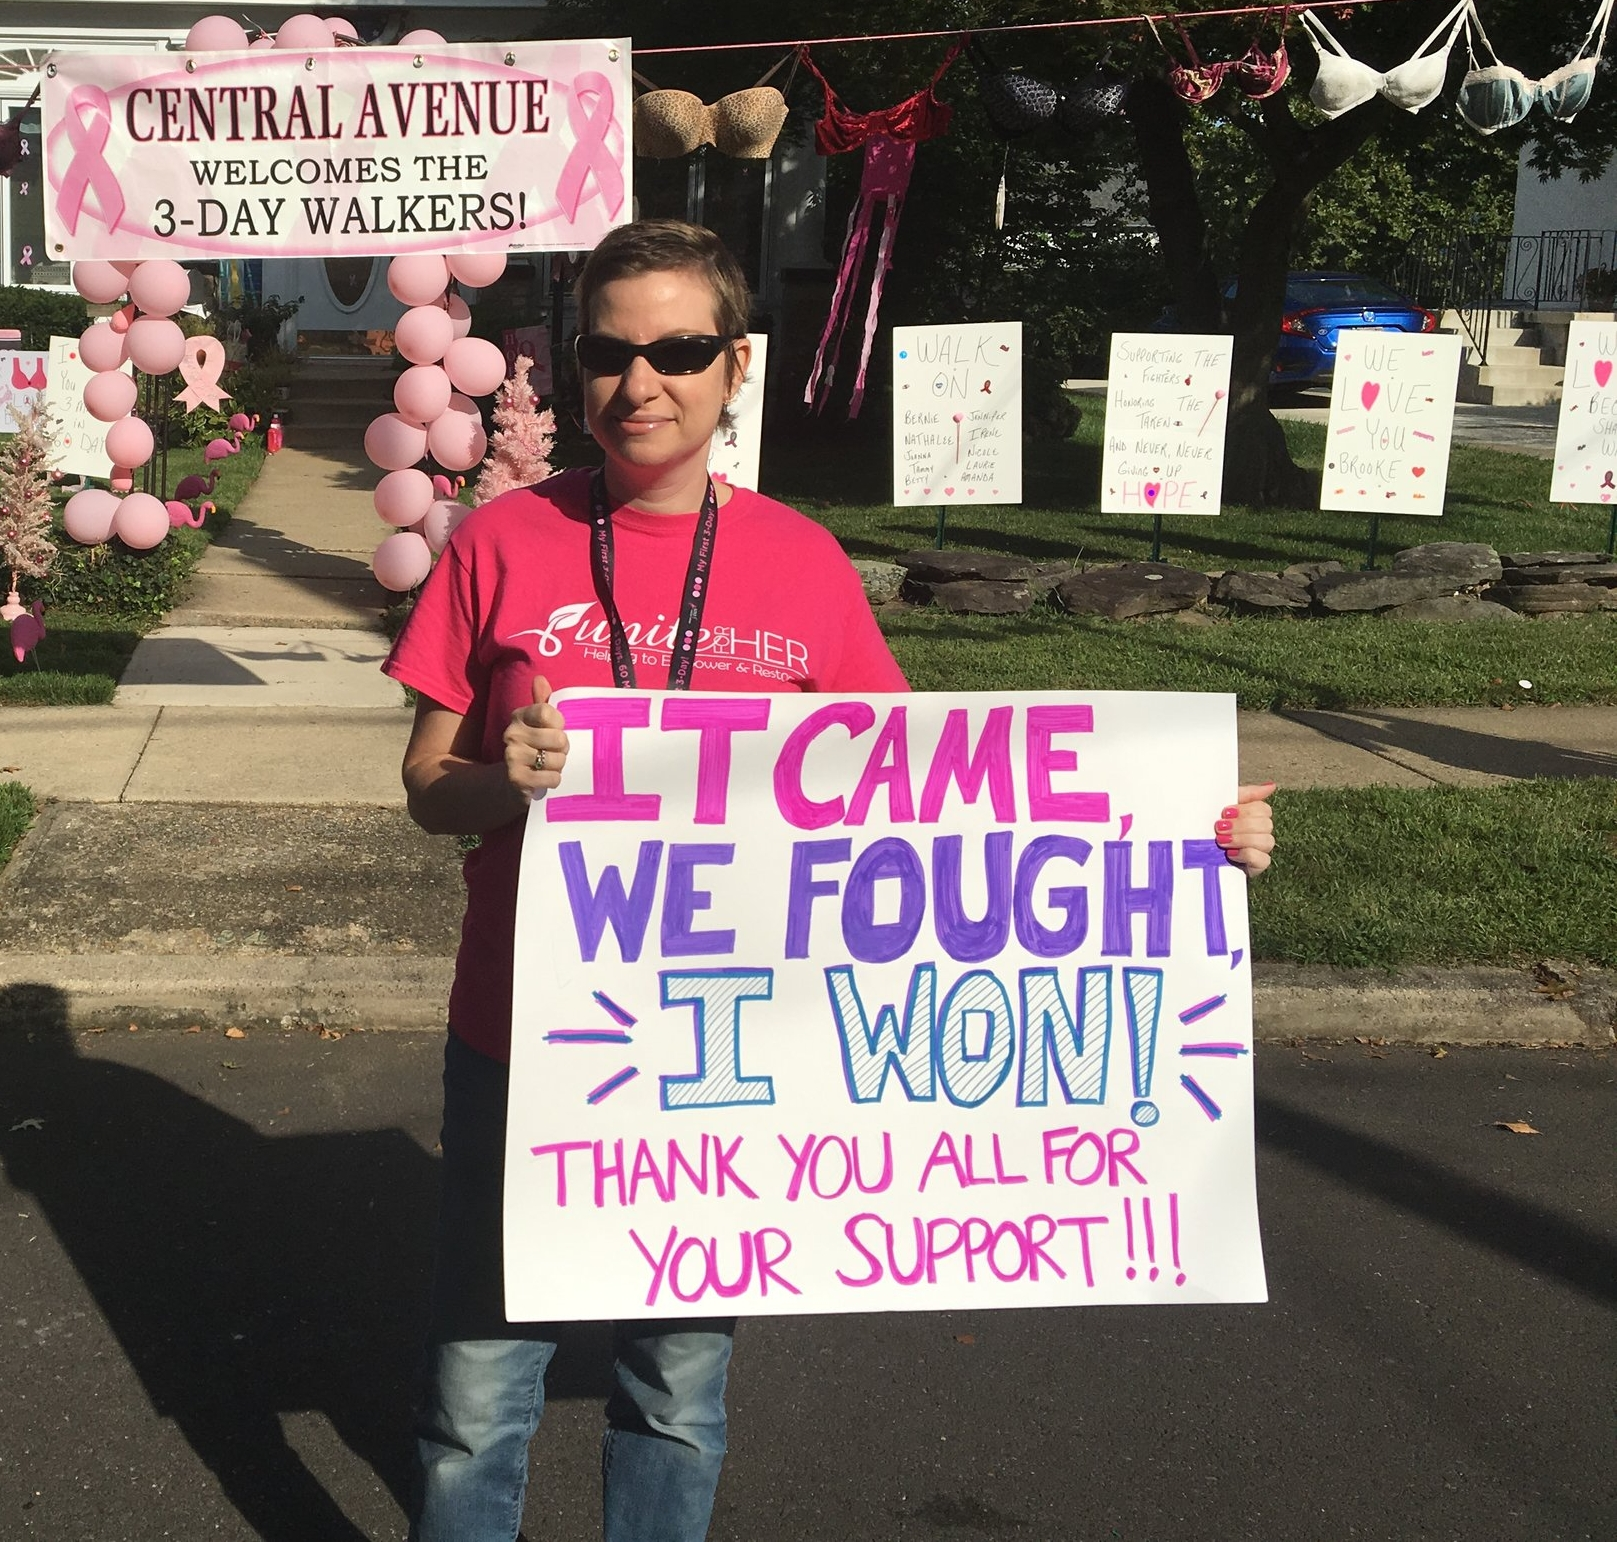 Cheering on the walkers at the Susan G Komen 3 Day